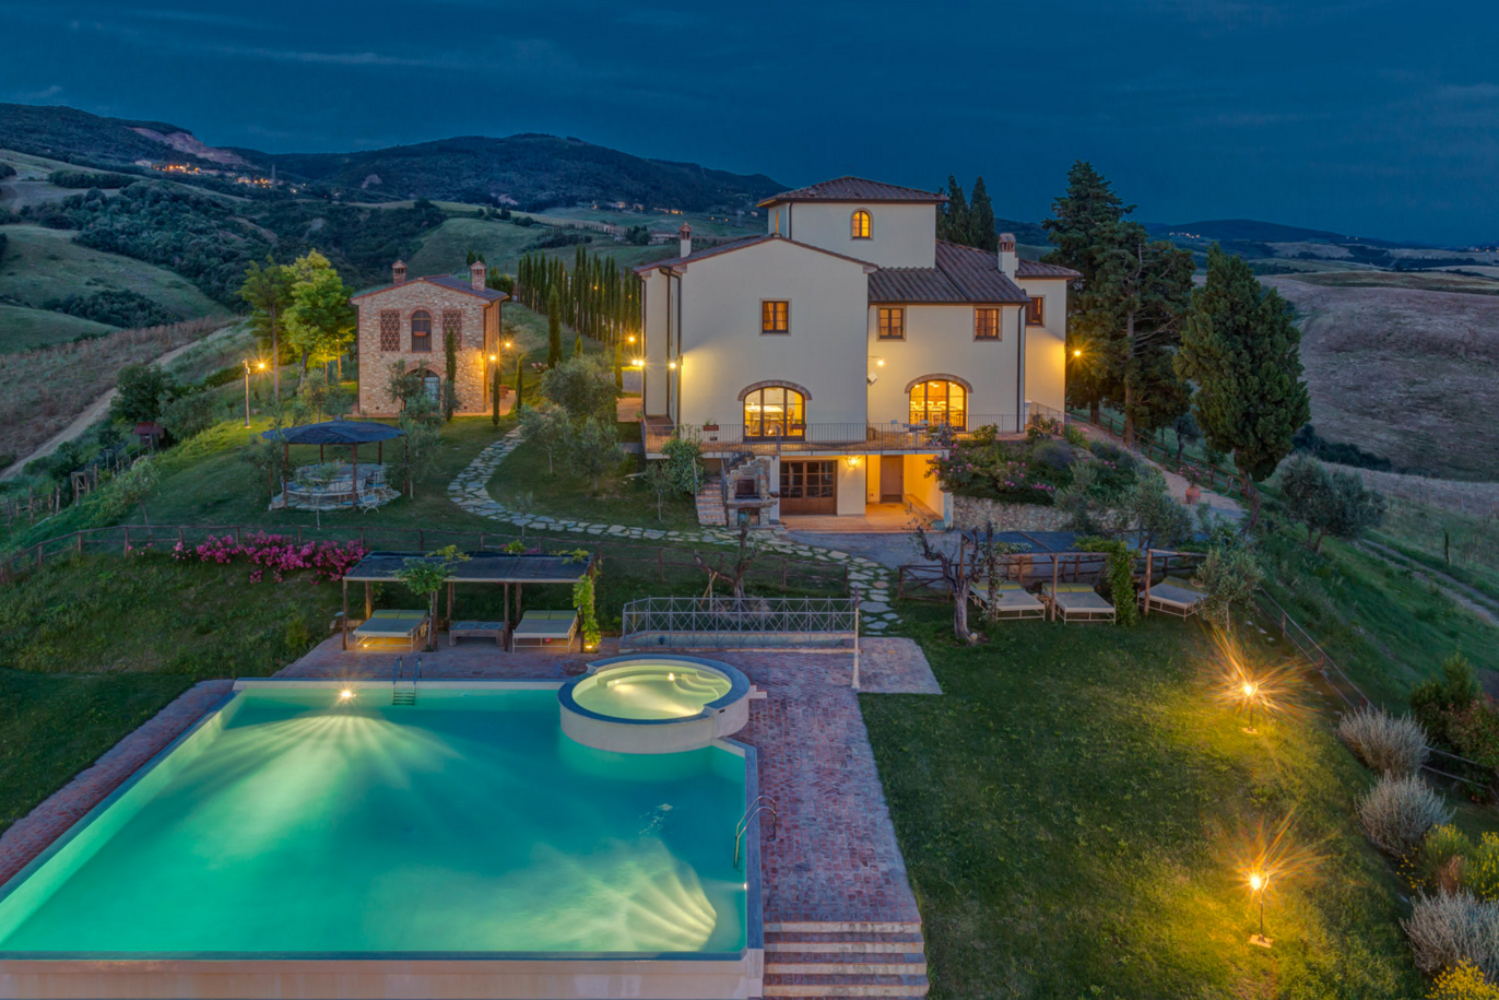 farm holiday houses agriturismi in tuscany visit tuscany